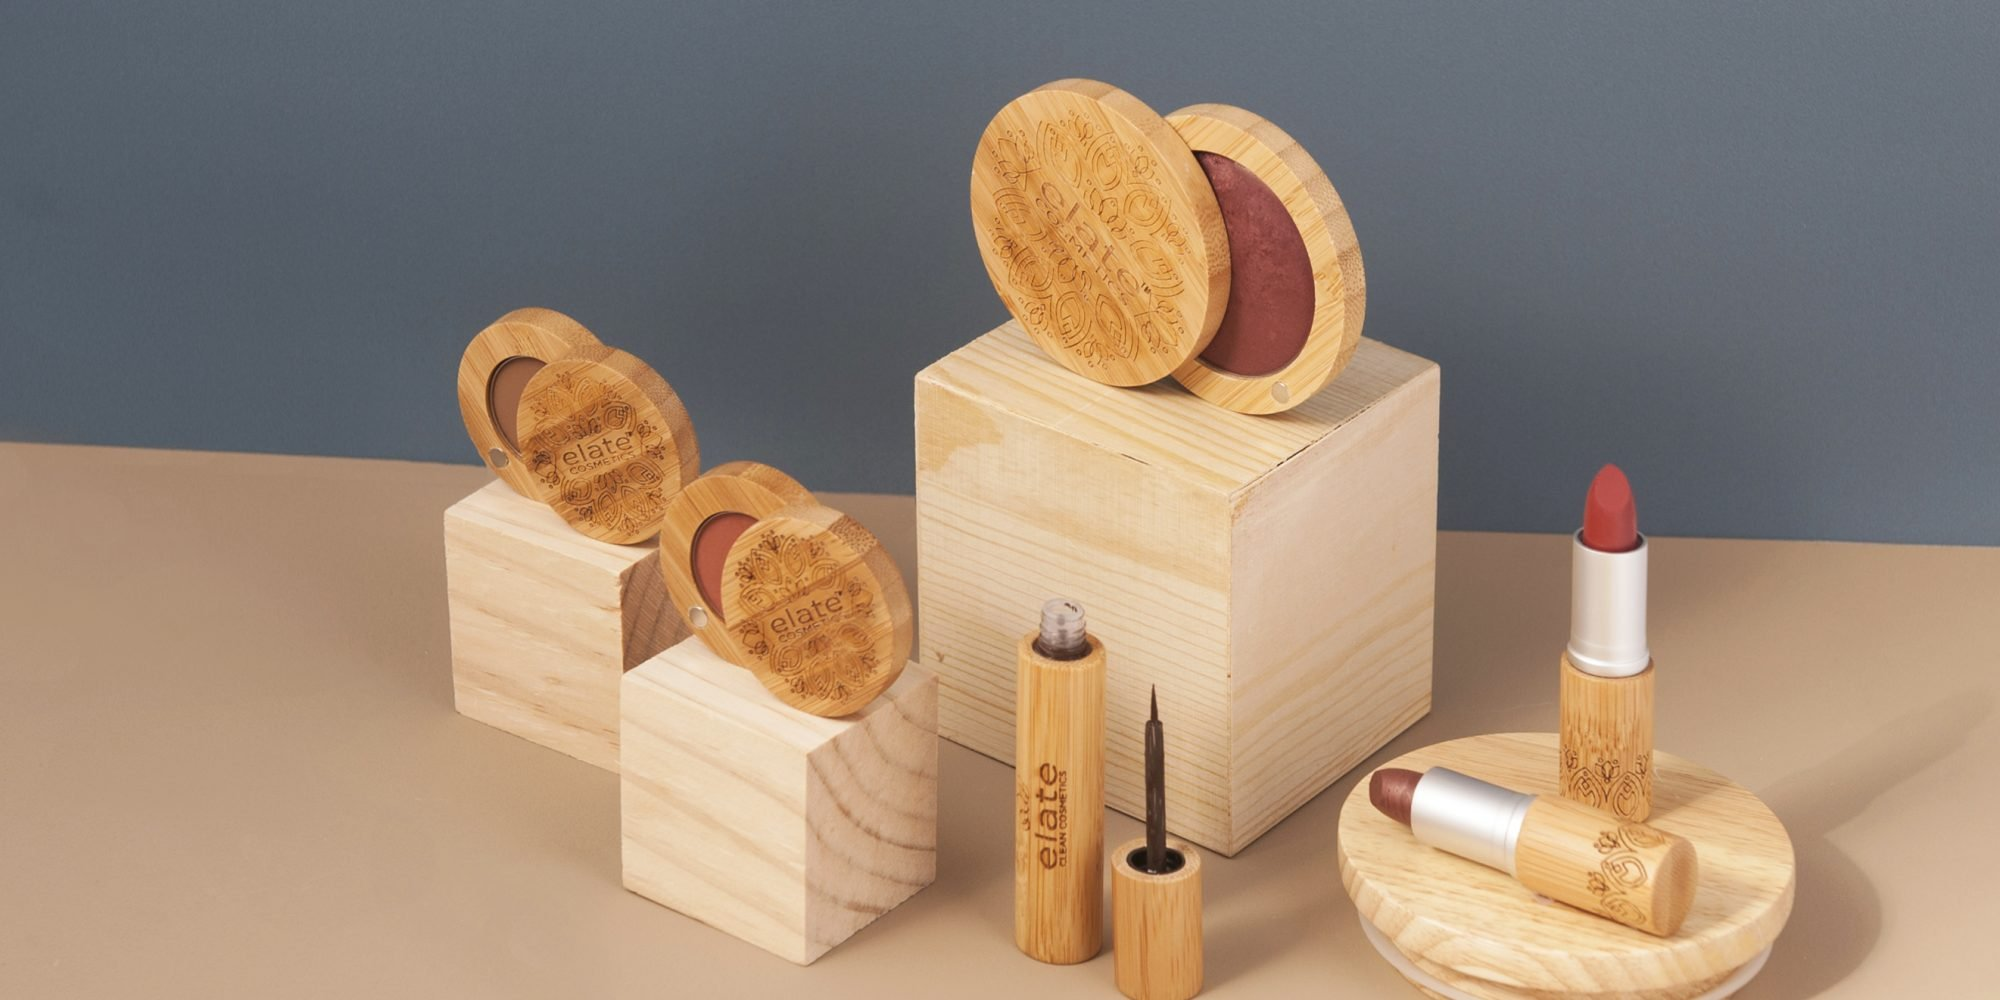 Promising For Sustainability, Refillable Beauty Packaging Is A Tough Sell For Consumers And Retailers